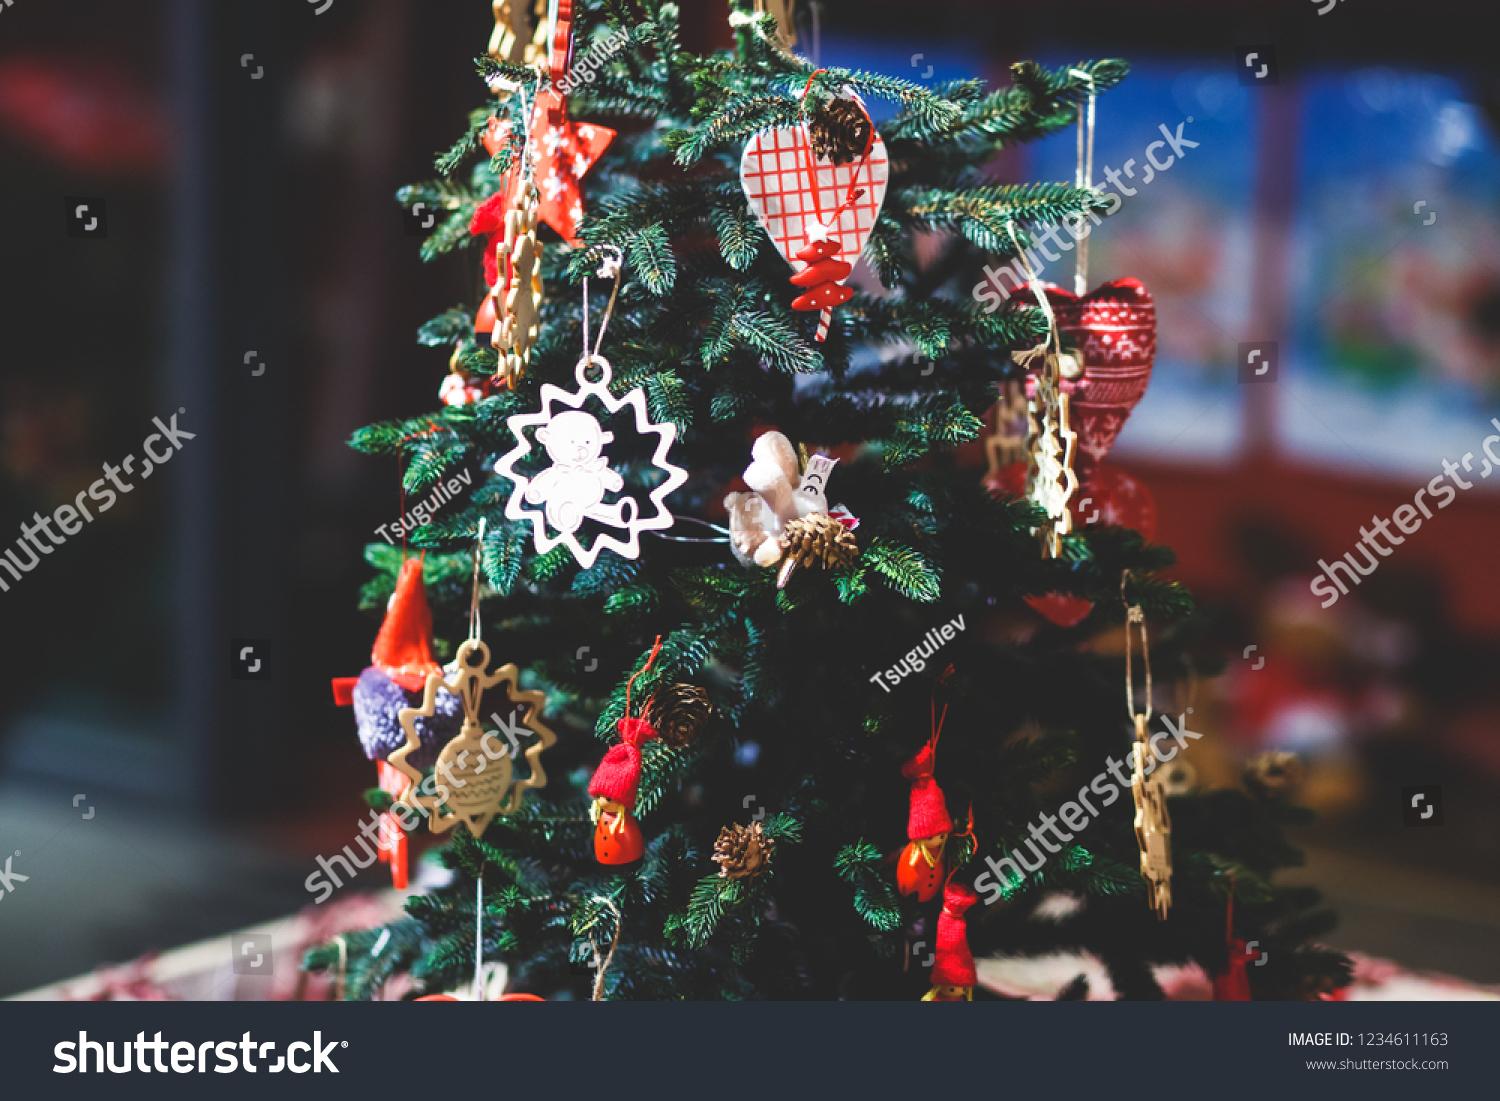 Elements Christmas Decoration Interior Santa Claus Stock Photo Edit Now 1234611163